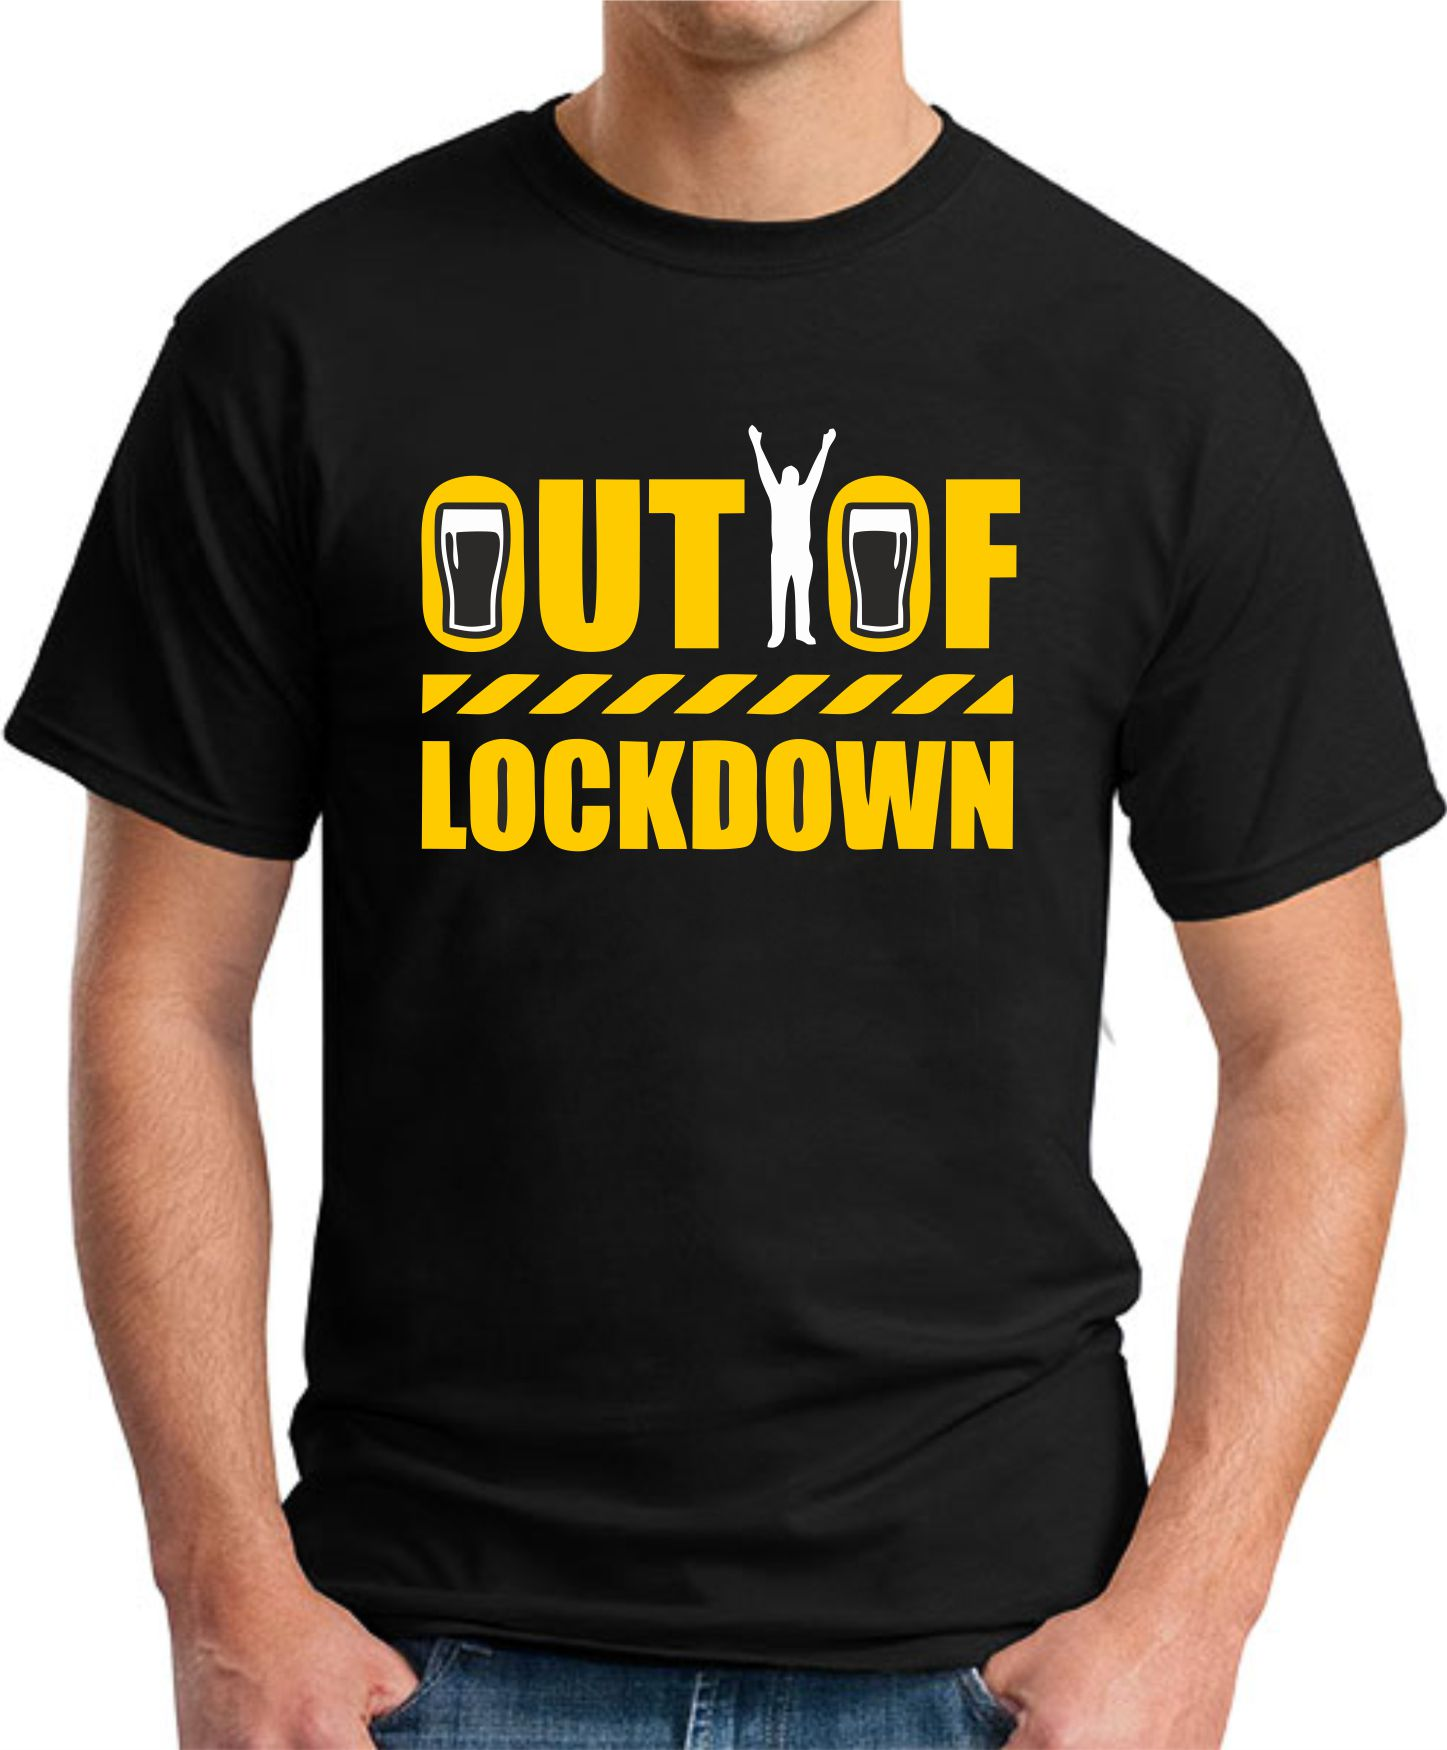 OUT OF LOCKDOWN black